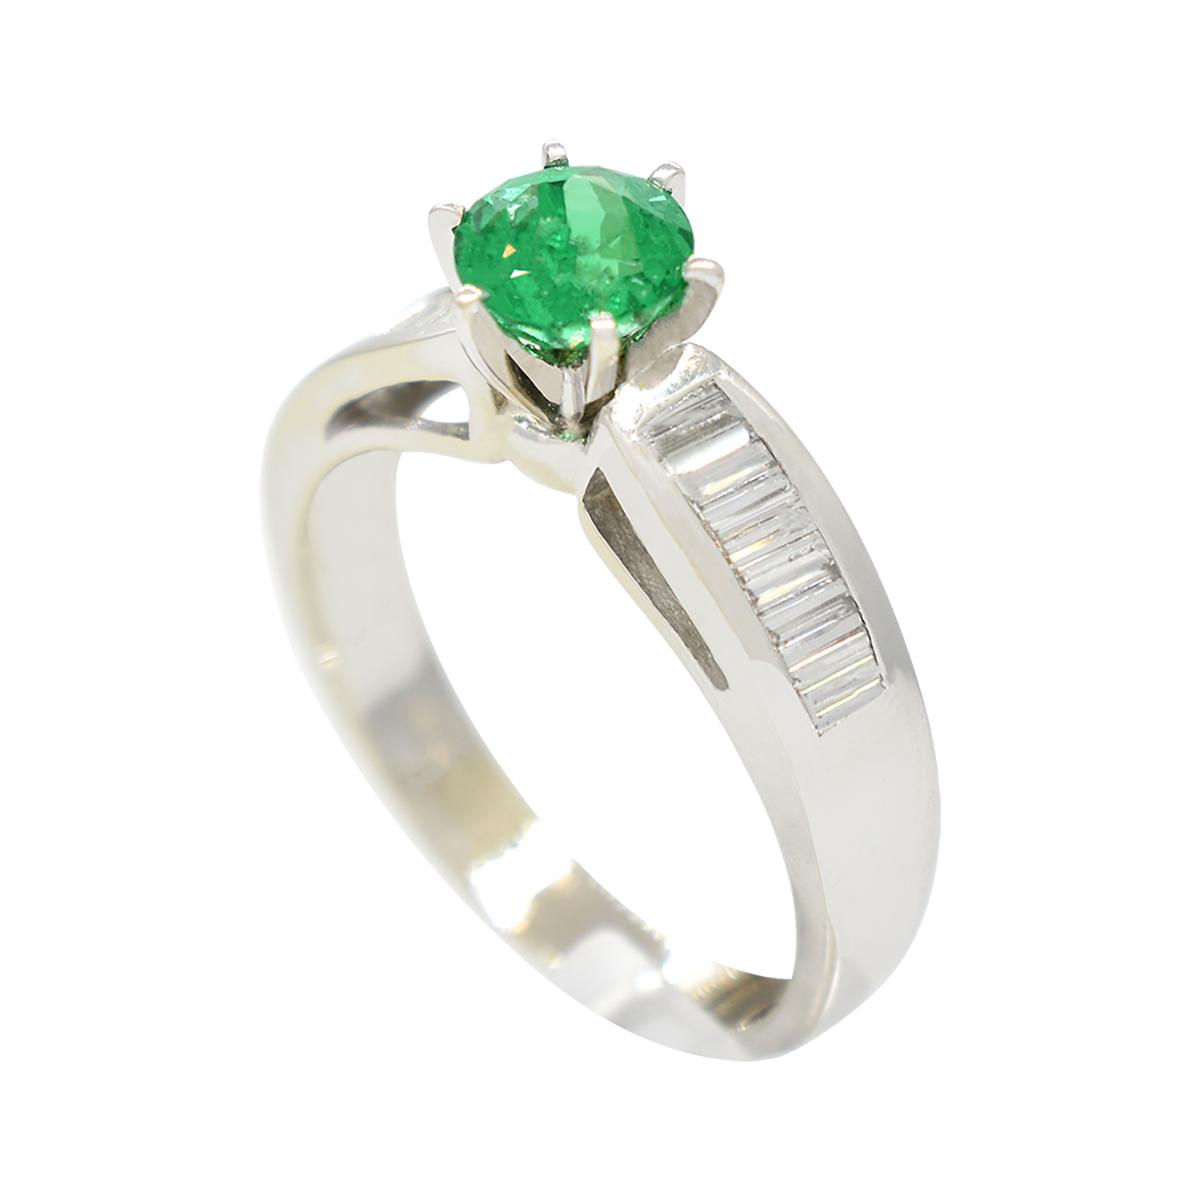 white-gold-emerald-engagement-ring-with-round-natural-emerald-and-baguette-cut-diamonds